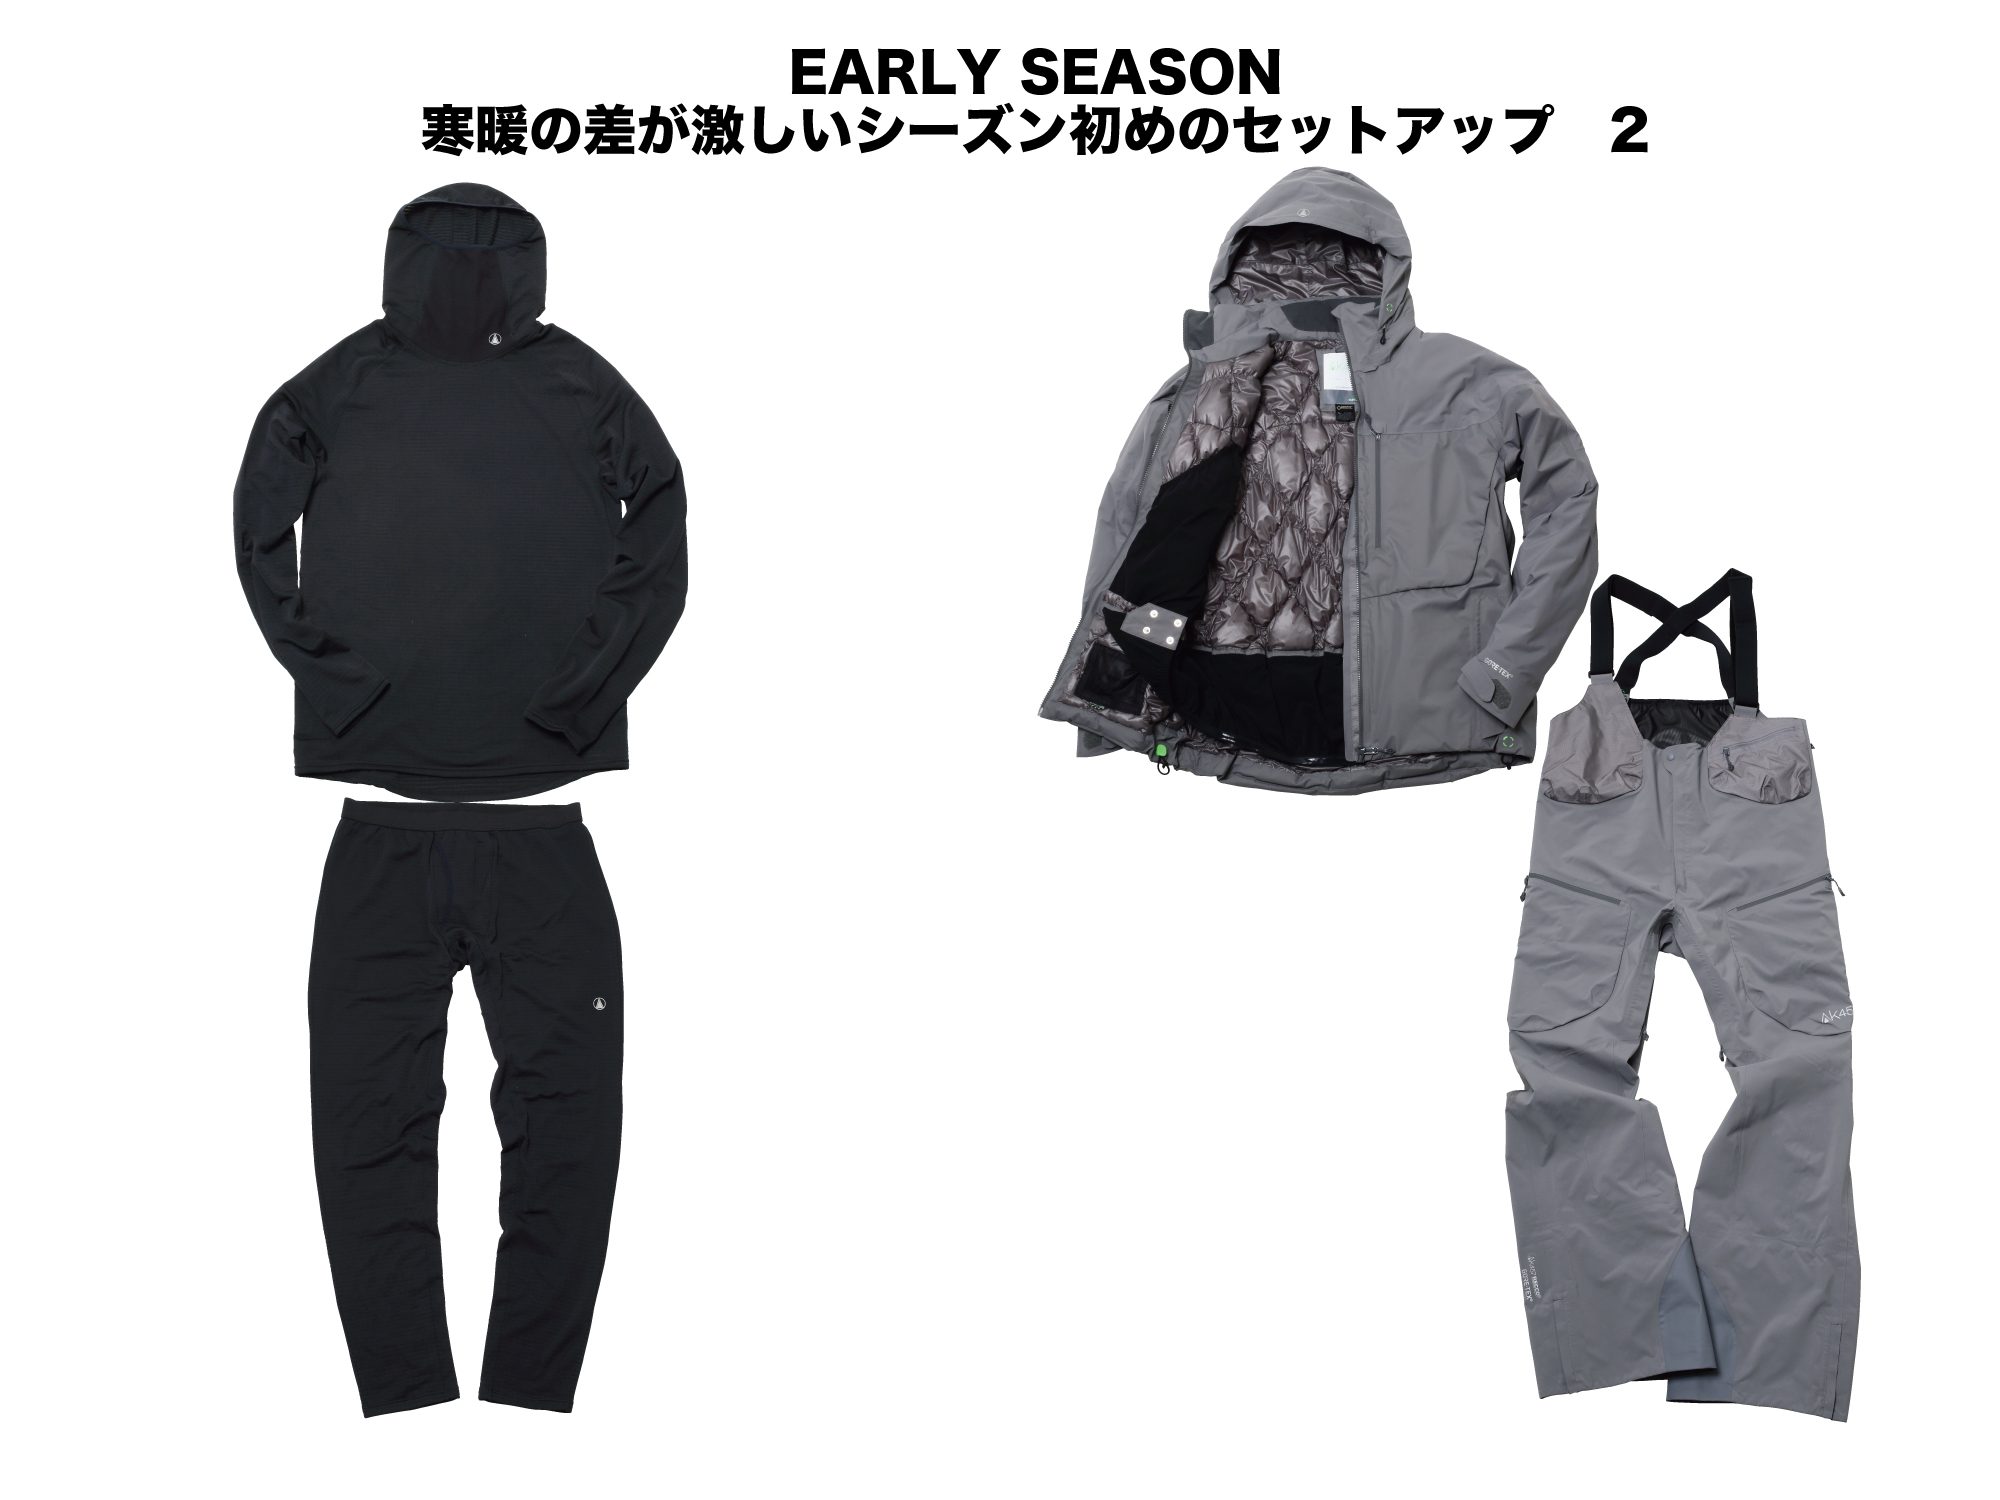 (上)(INNER)BASE LAYER HI NECK FLEECE:¥18,000 (OUTER)LIGHT DOWN JACKET:¥98,000 (下)(INNER)BASE LAYER PANT FLEECE:¥16,000 (OUTER)HI-TOP PANT:¥79,000